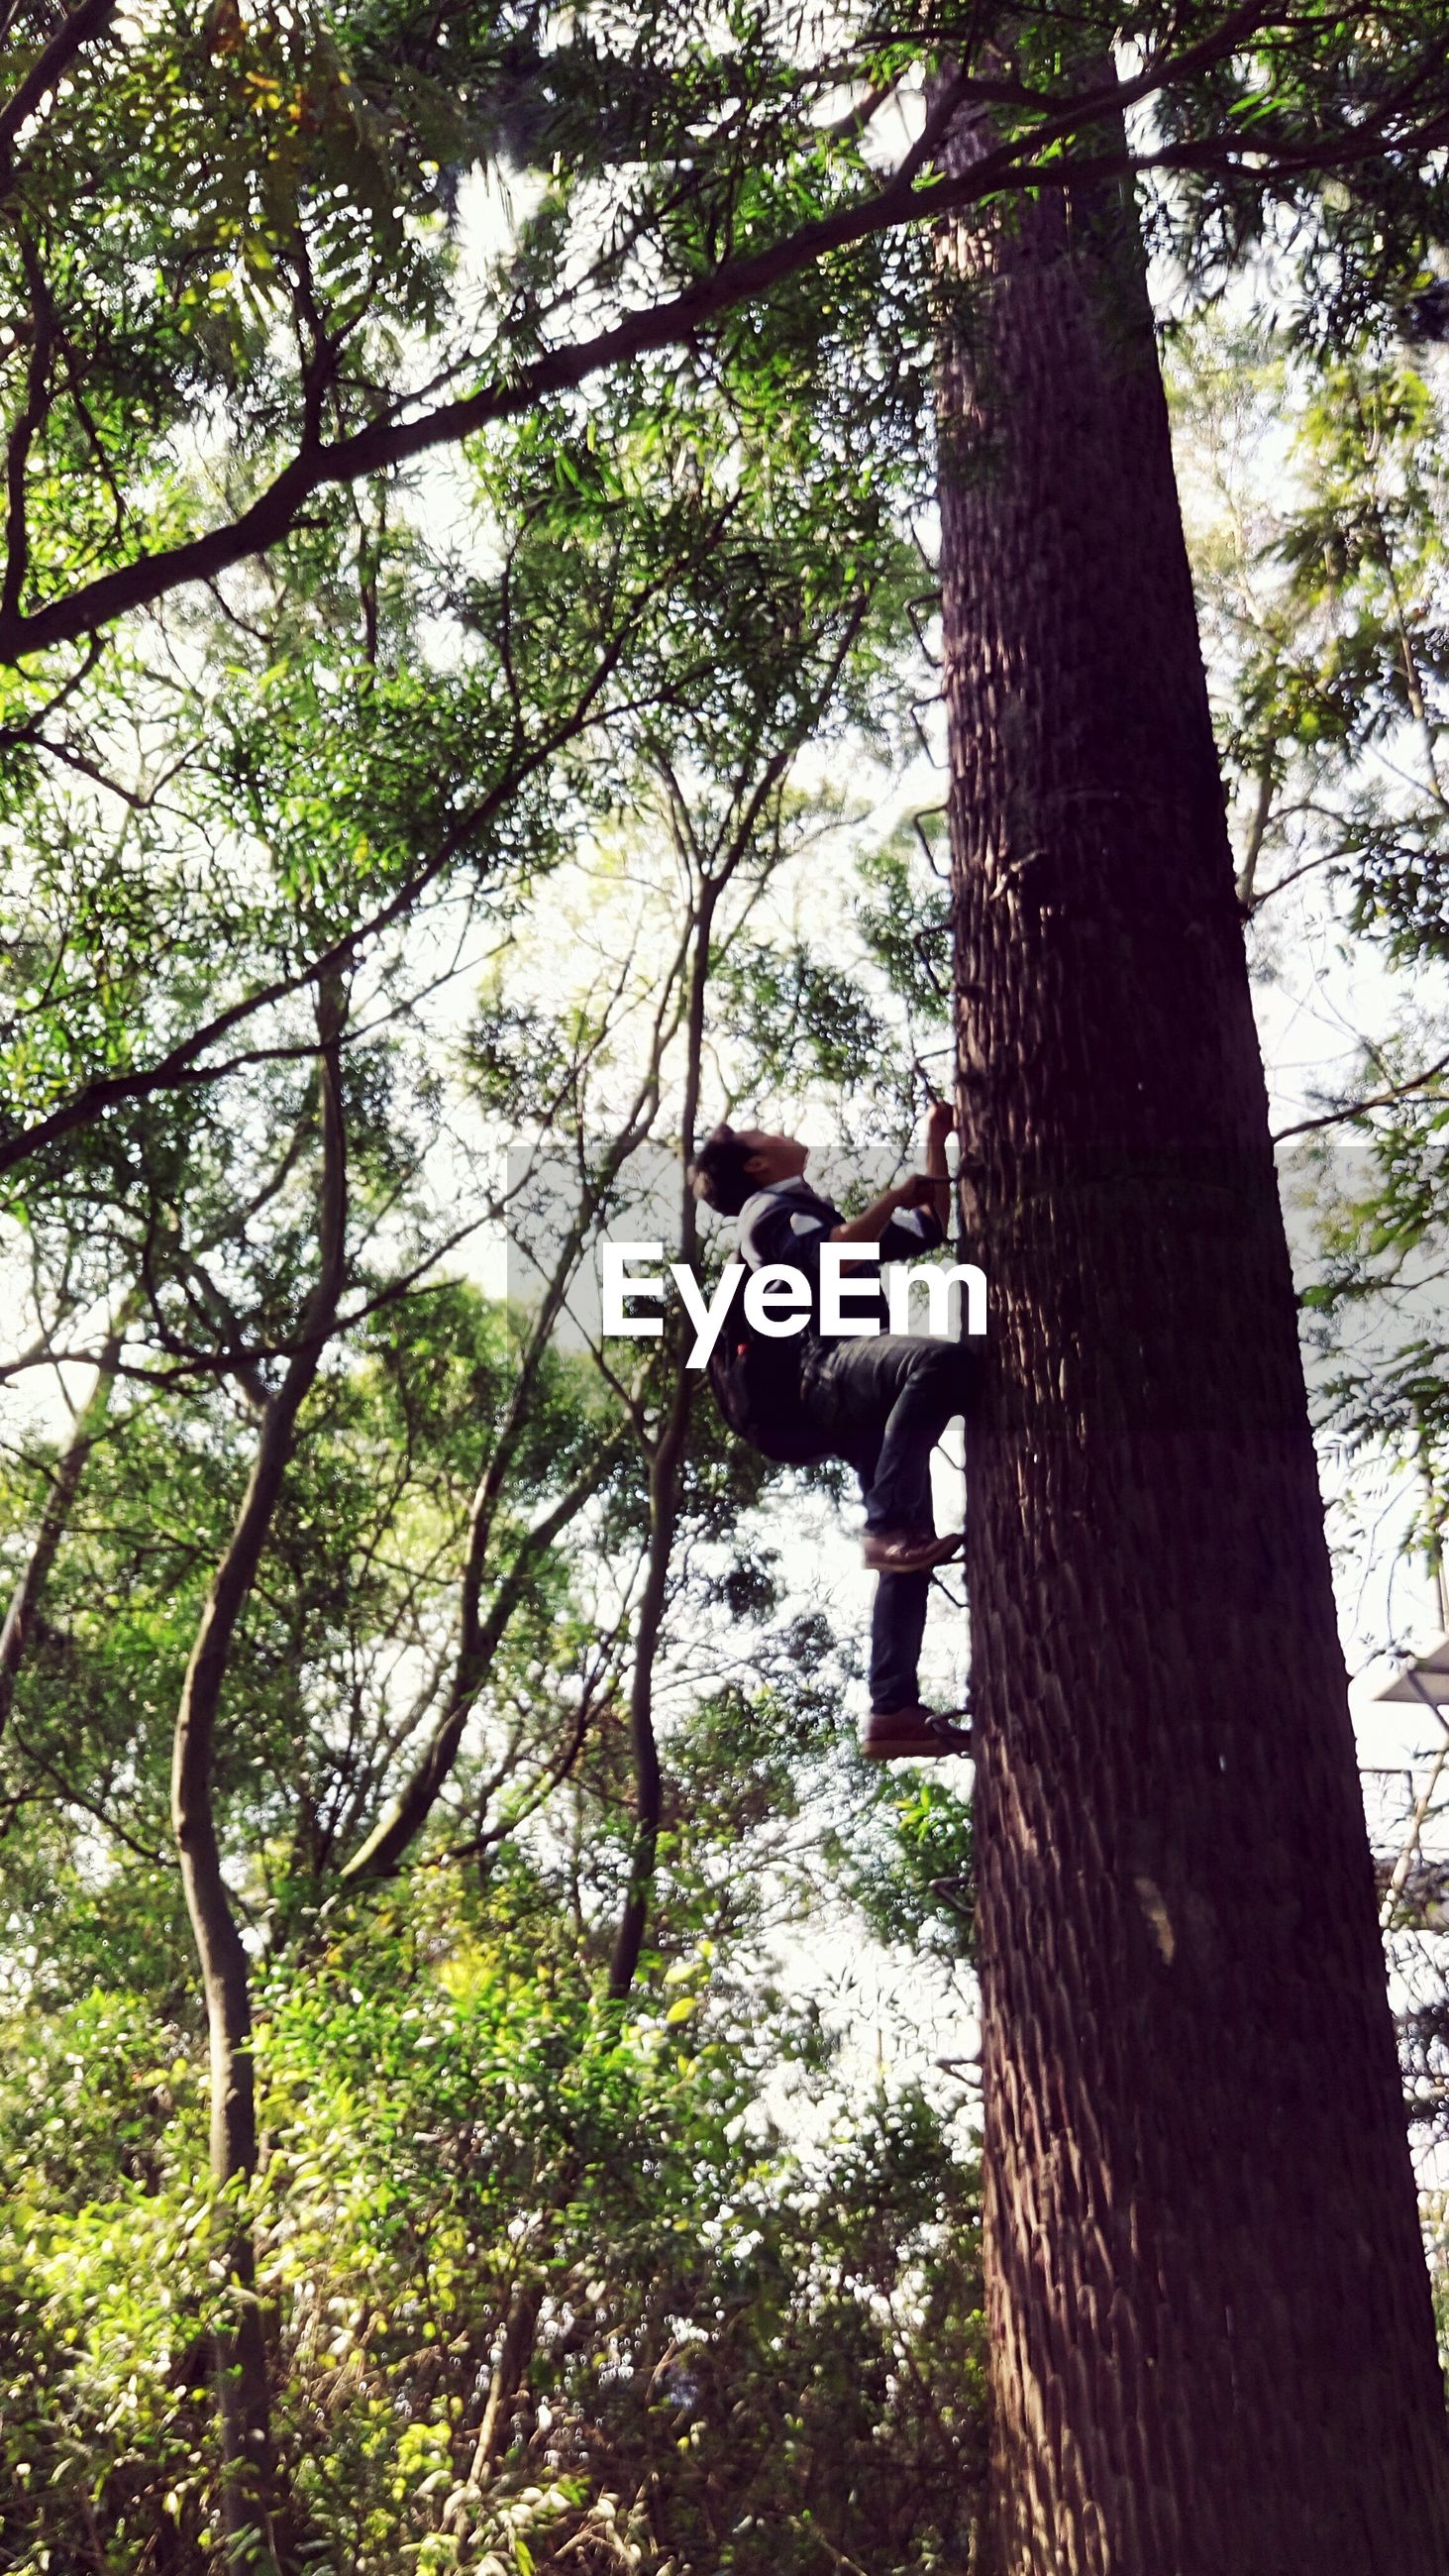 tree, tree trunk, growth, low angle view, branch, leisure activity, lifestyles, day, park - man made space, men, nature, sunlight, outdoors, full length, sculpture, green color, human representation, sky